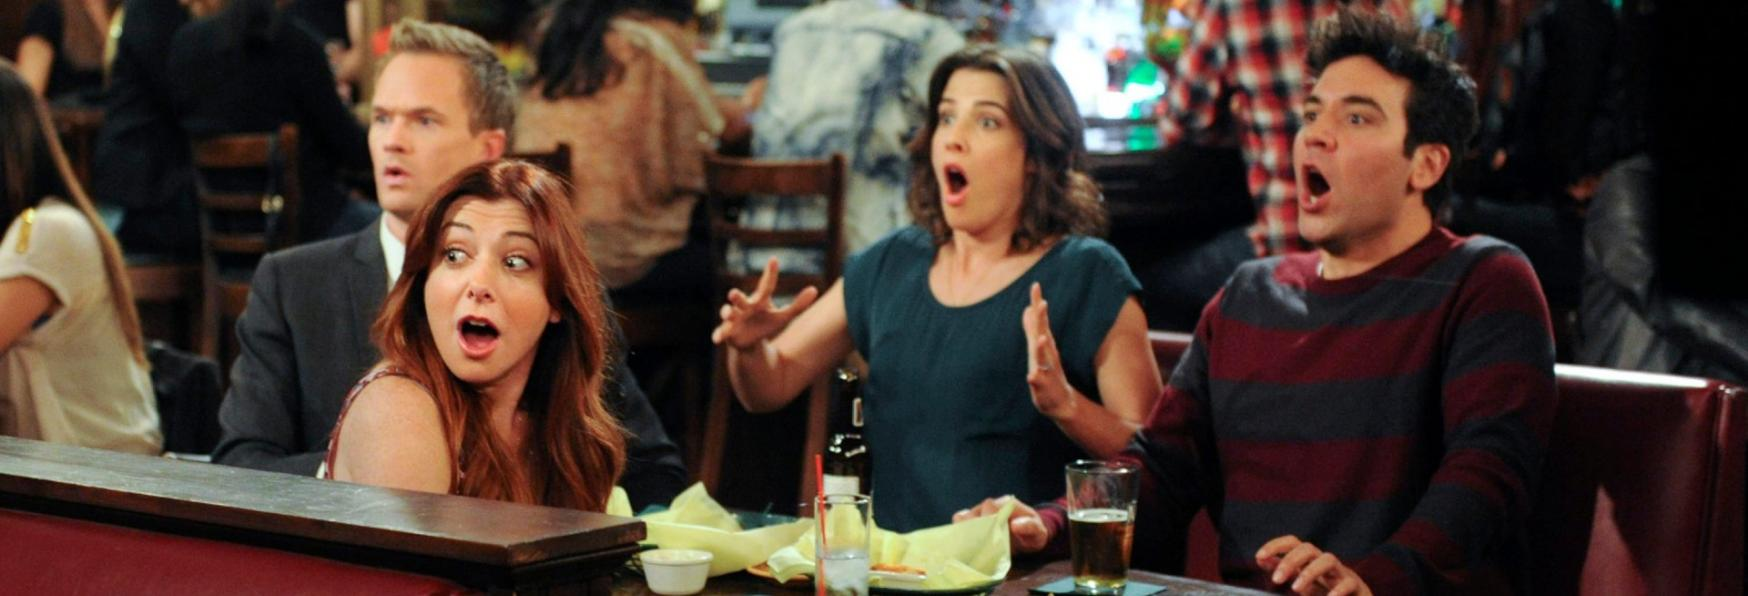 How I Met Your Mother: Hulu ordina uno Spin-off della famosa Serie TV...con Hilary Duff!